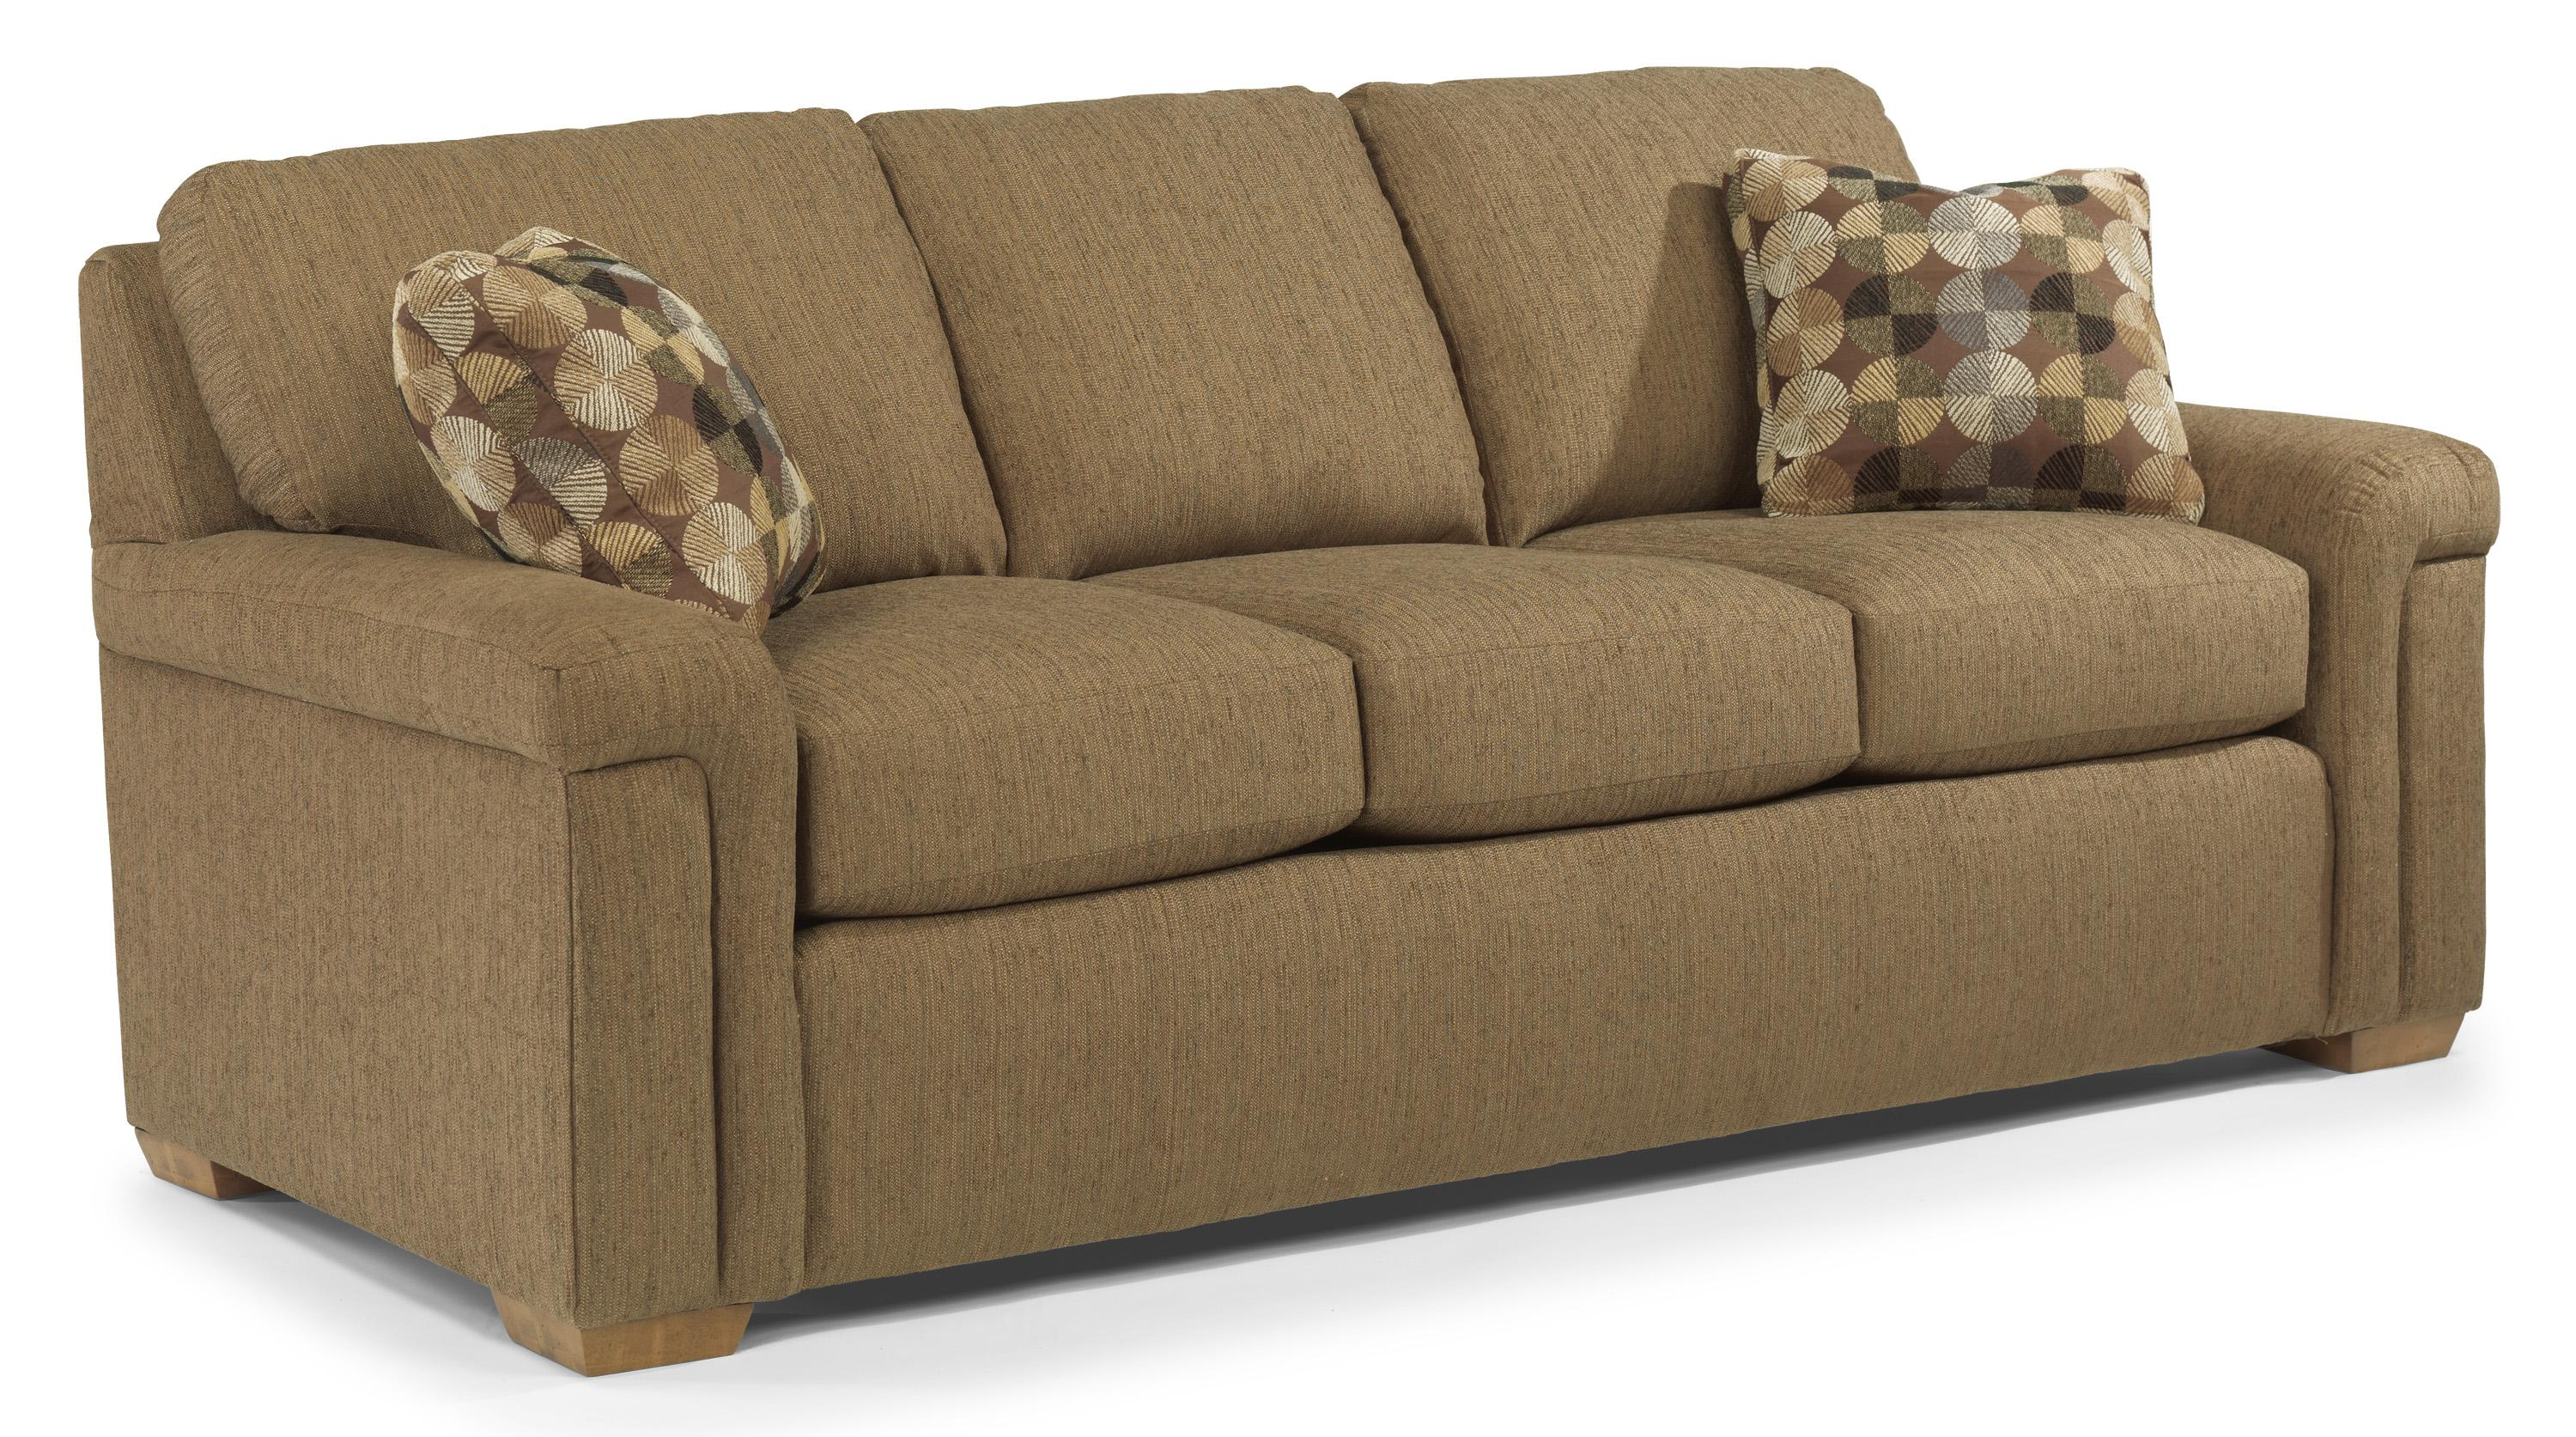 Flexsteel Blanchard <b>Value Package </b> Casual Sofa with Pillow ...